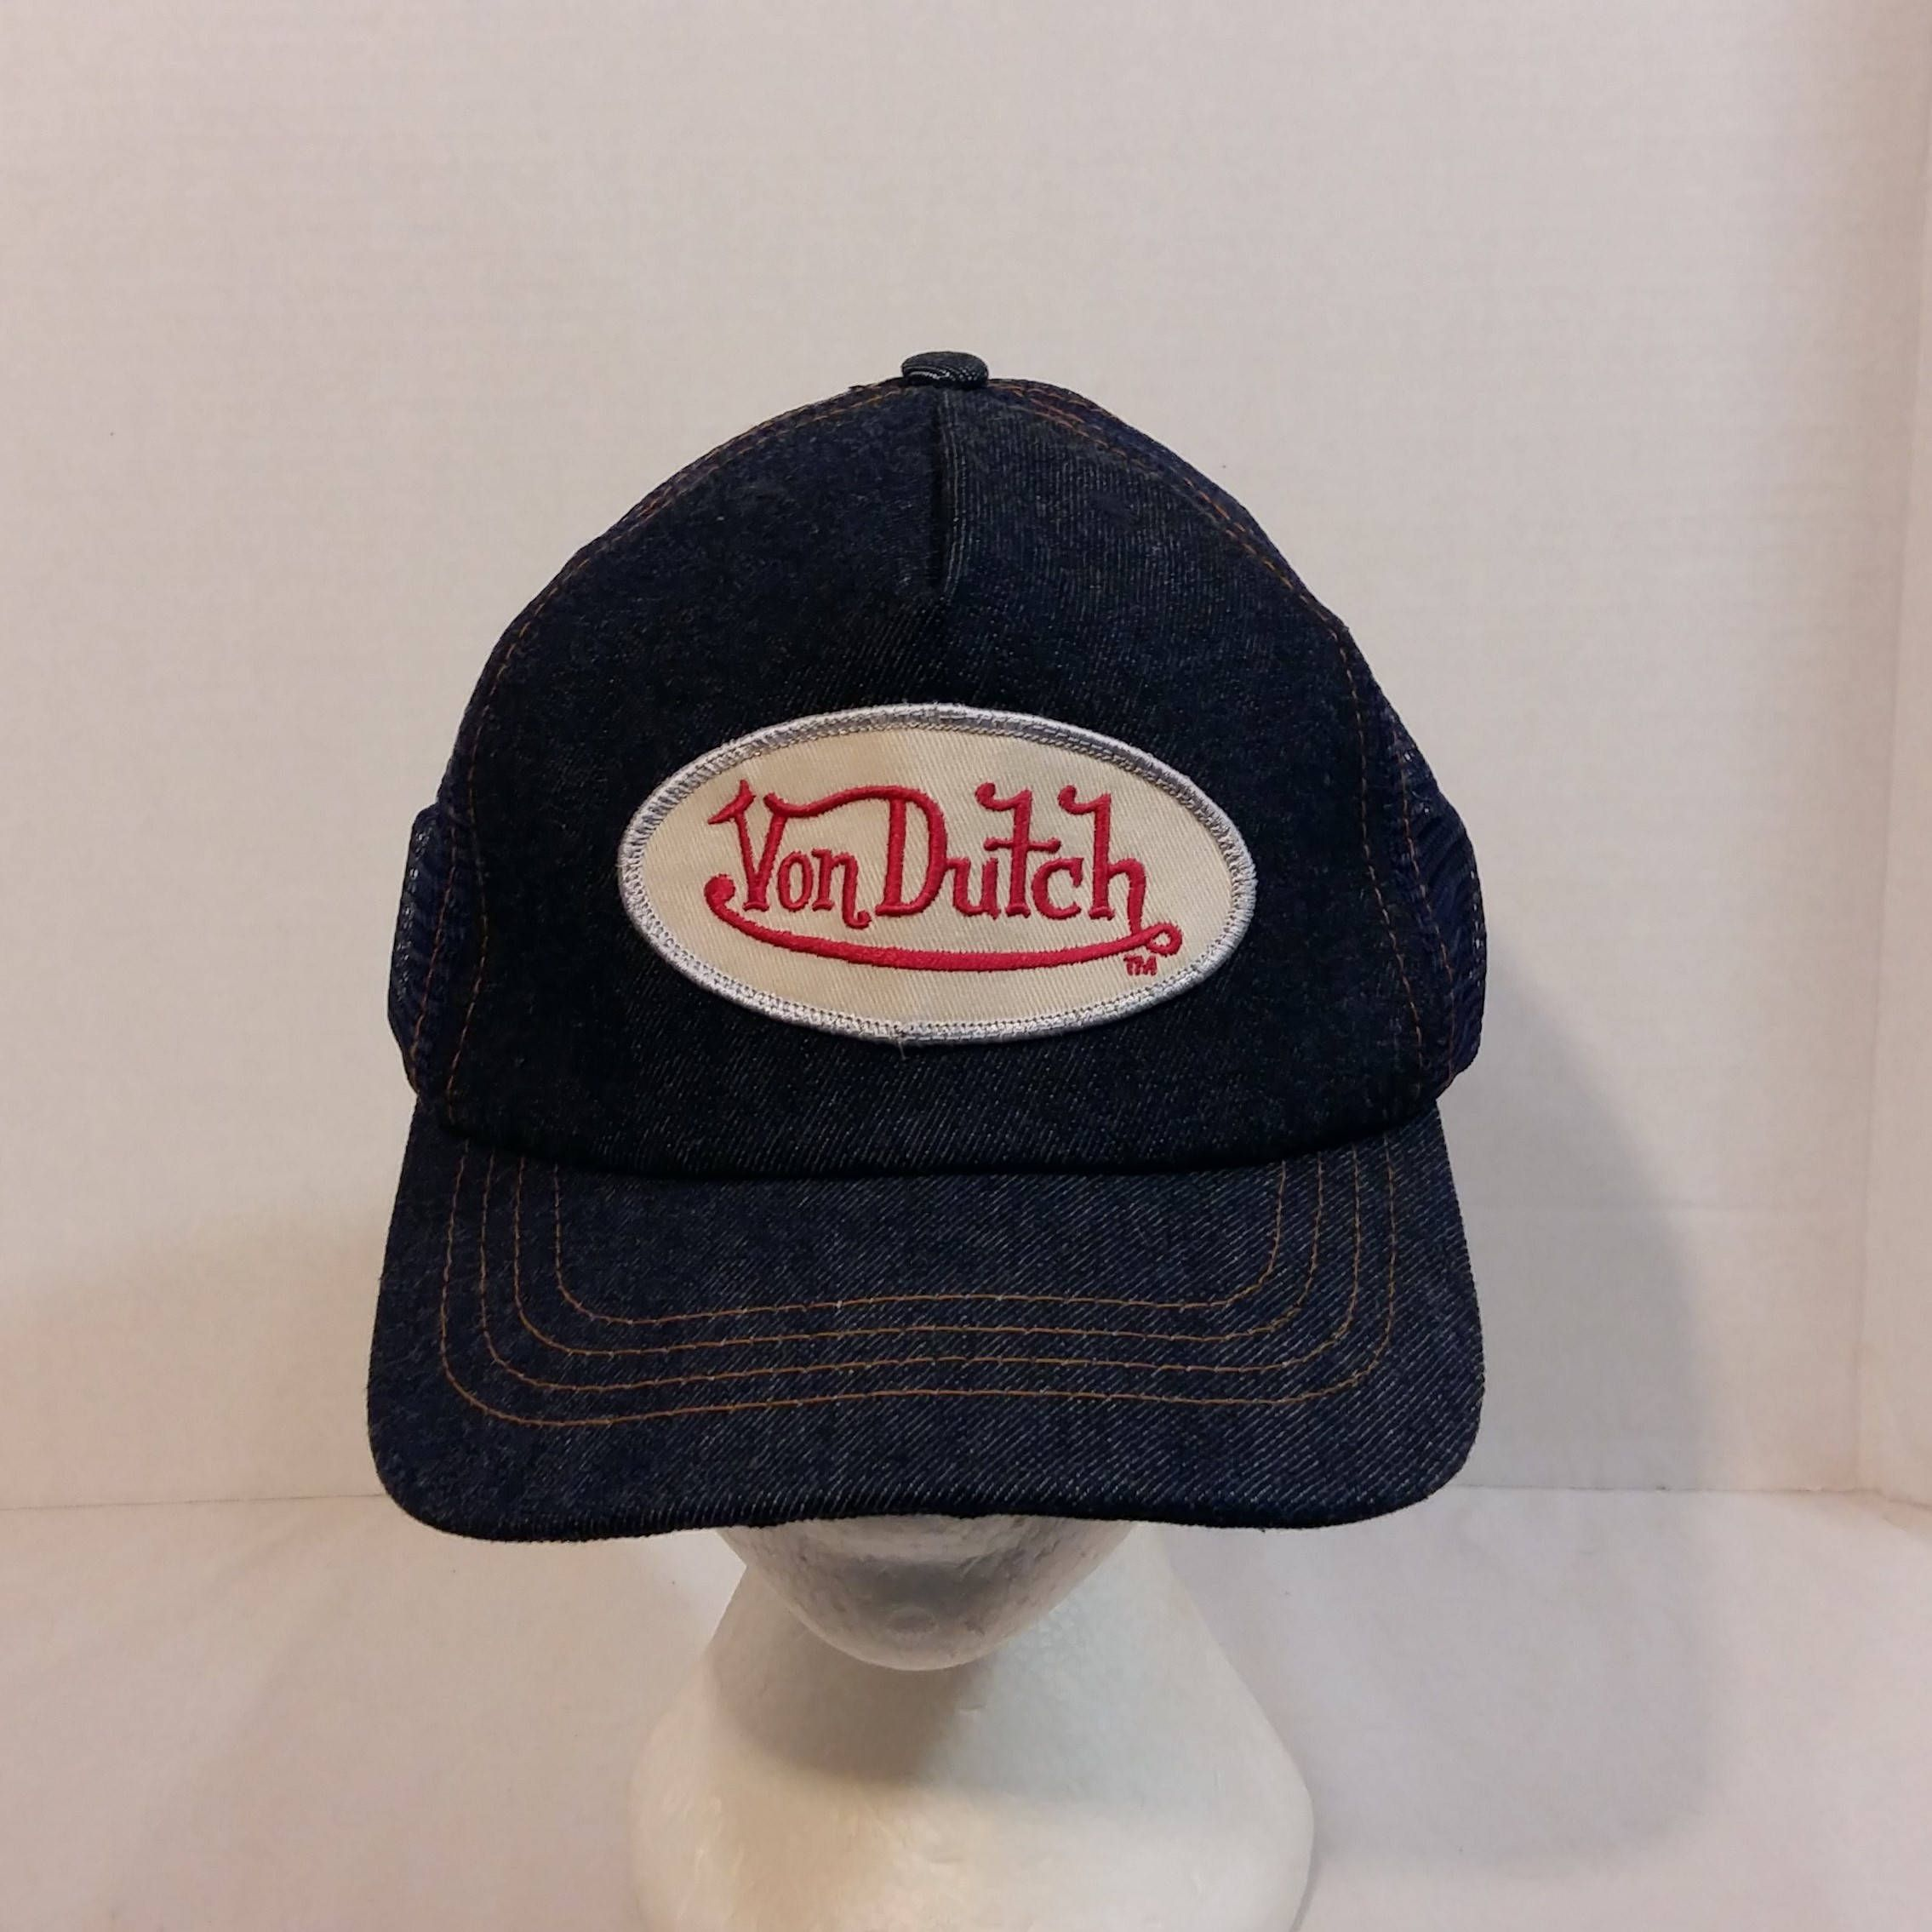 Von Dutch Vintage Baseball Truckers Hat Cap Snapback Made in USA by  LouisandRileys on Etsy c40f50e316a